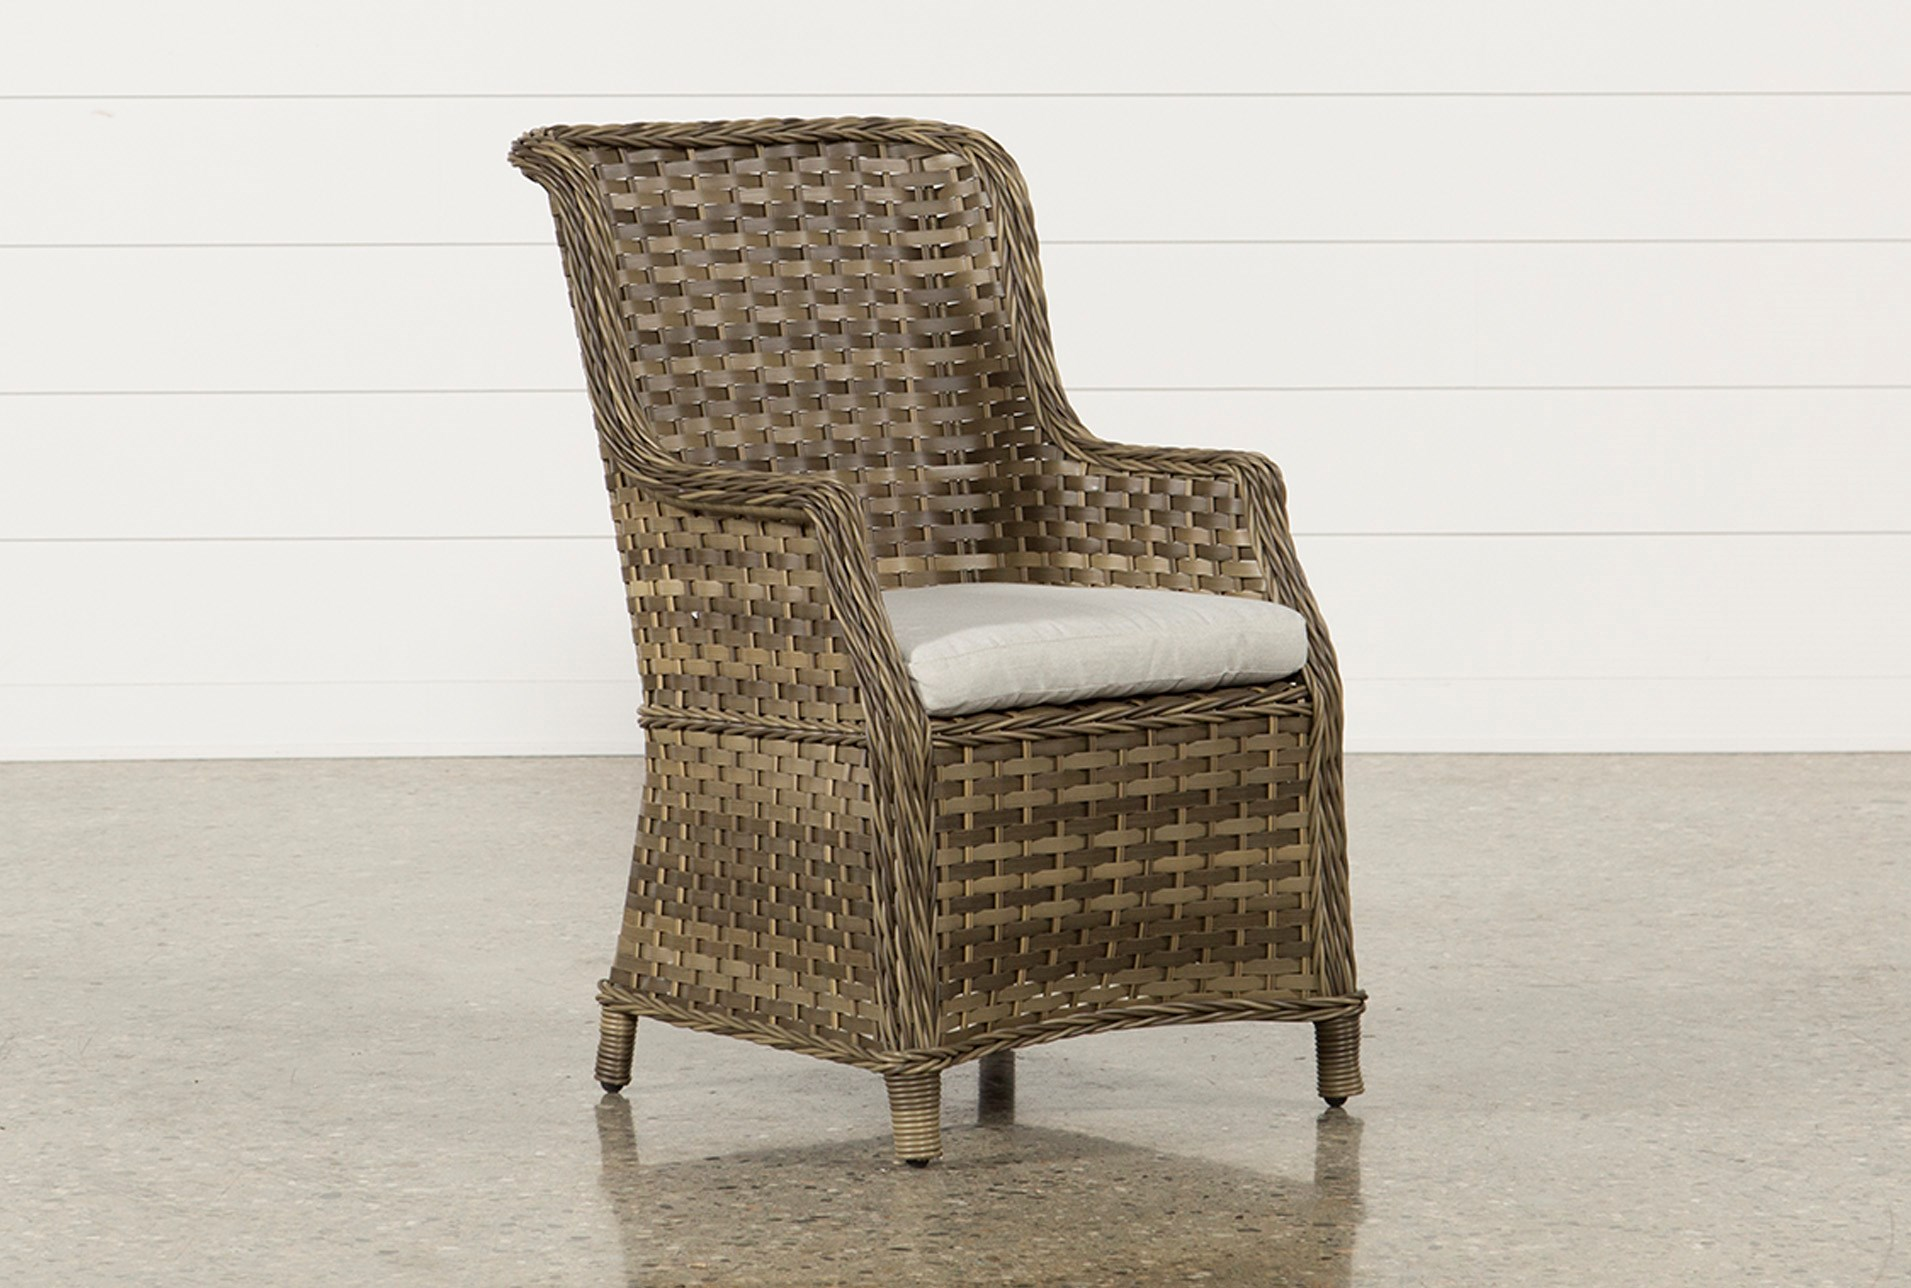 tasty lounge chairs for living room. Outdoor Aventura Dining Chair Room Chairs to Fit Your Home Decor  Living Spaces